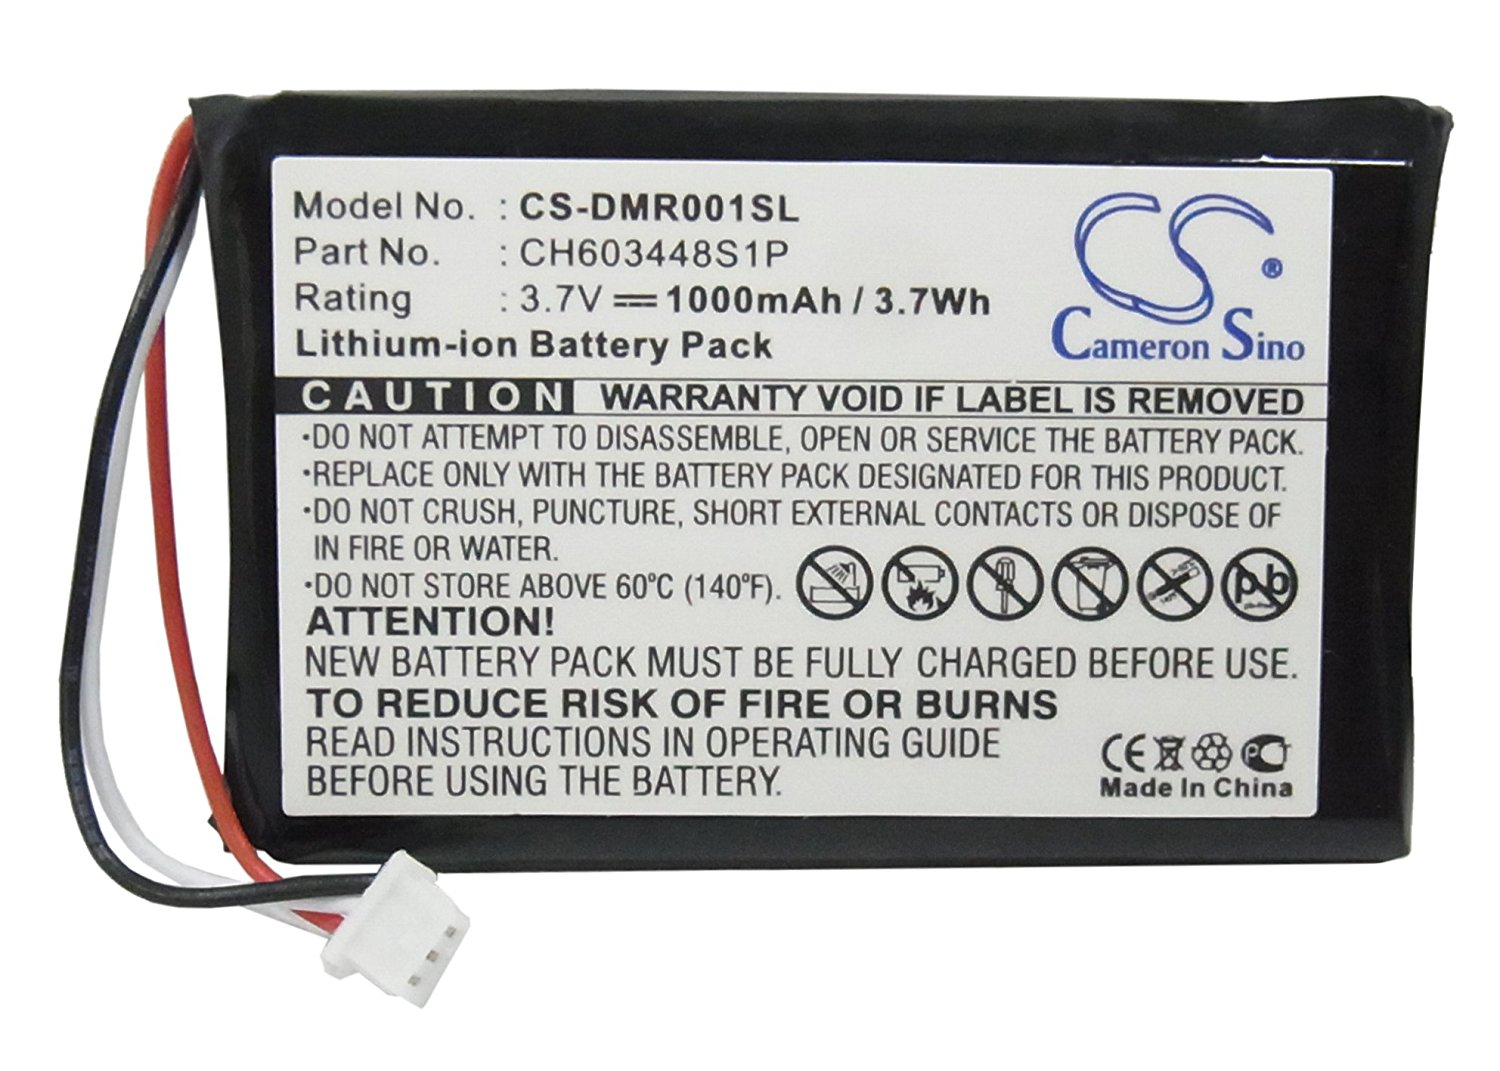 ESPN CH603448S1P Battery - Replacement for ESPN DMR-1 Battery ( 1000mAh, 3.7V, Li-ion)